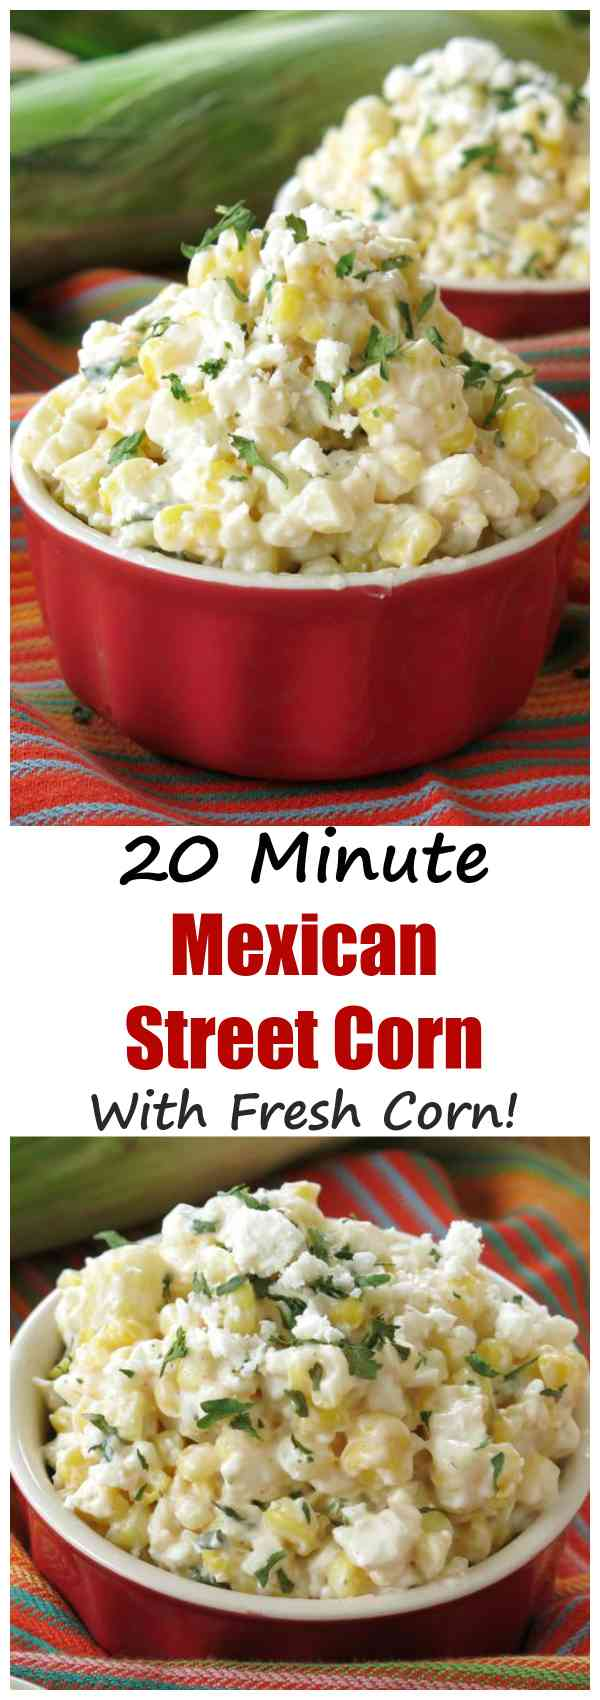 Mexican Street Corn in a Cup Recipe with Fresh Corn